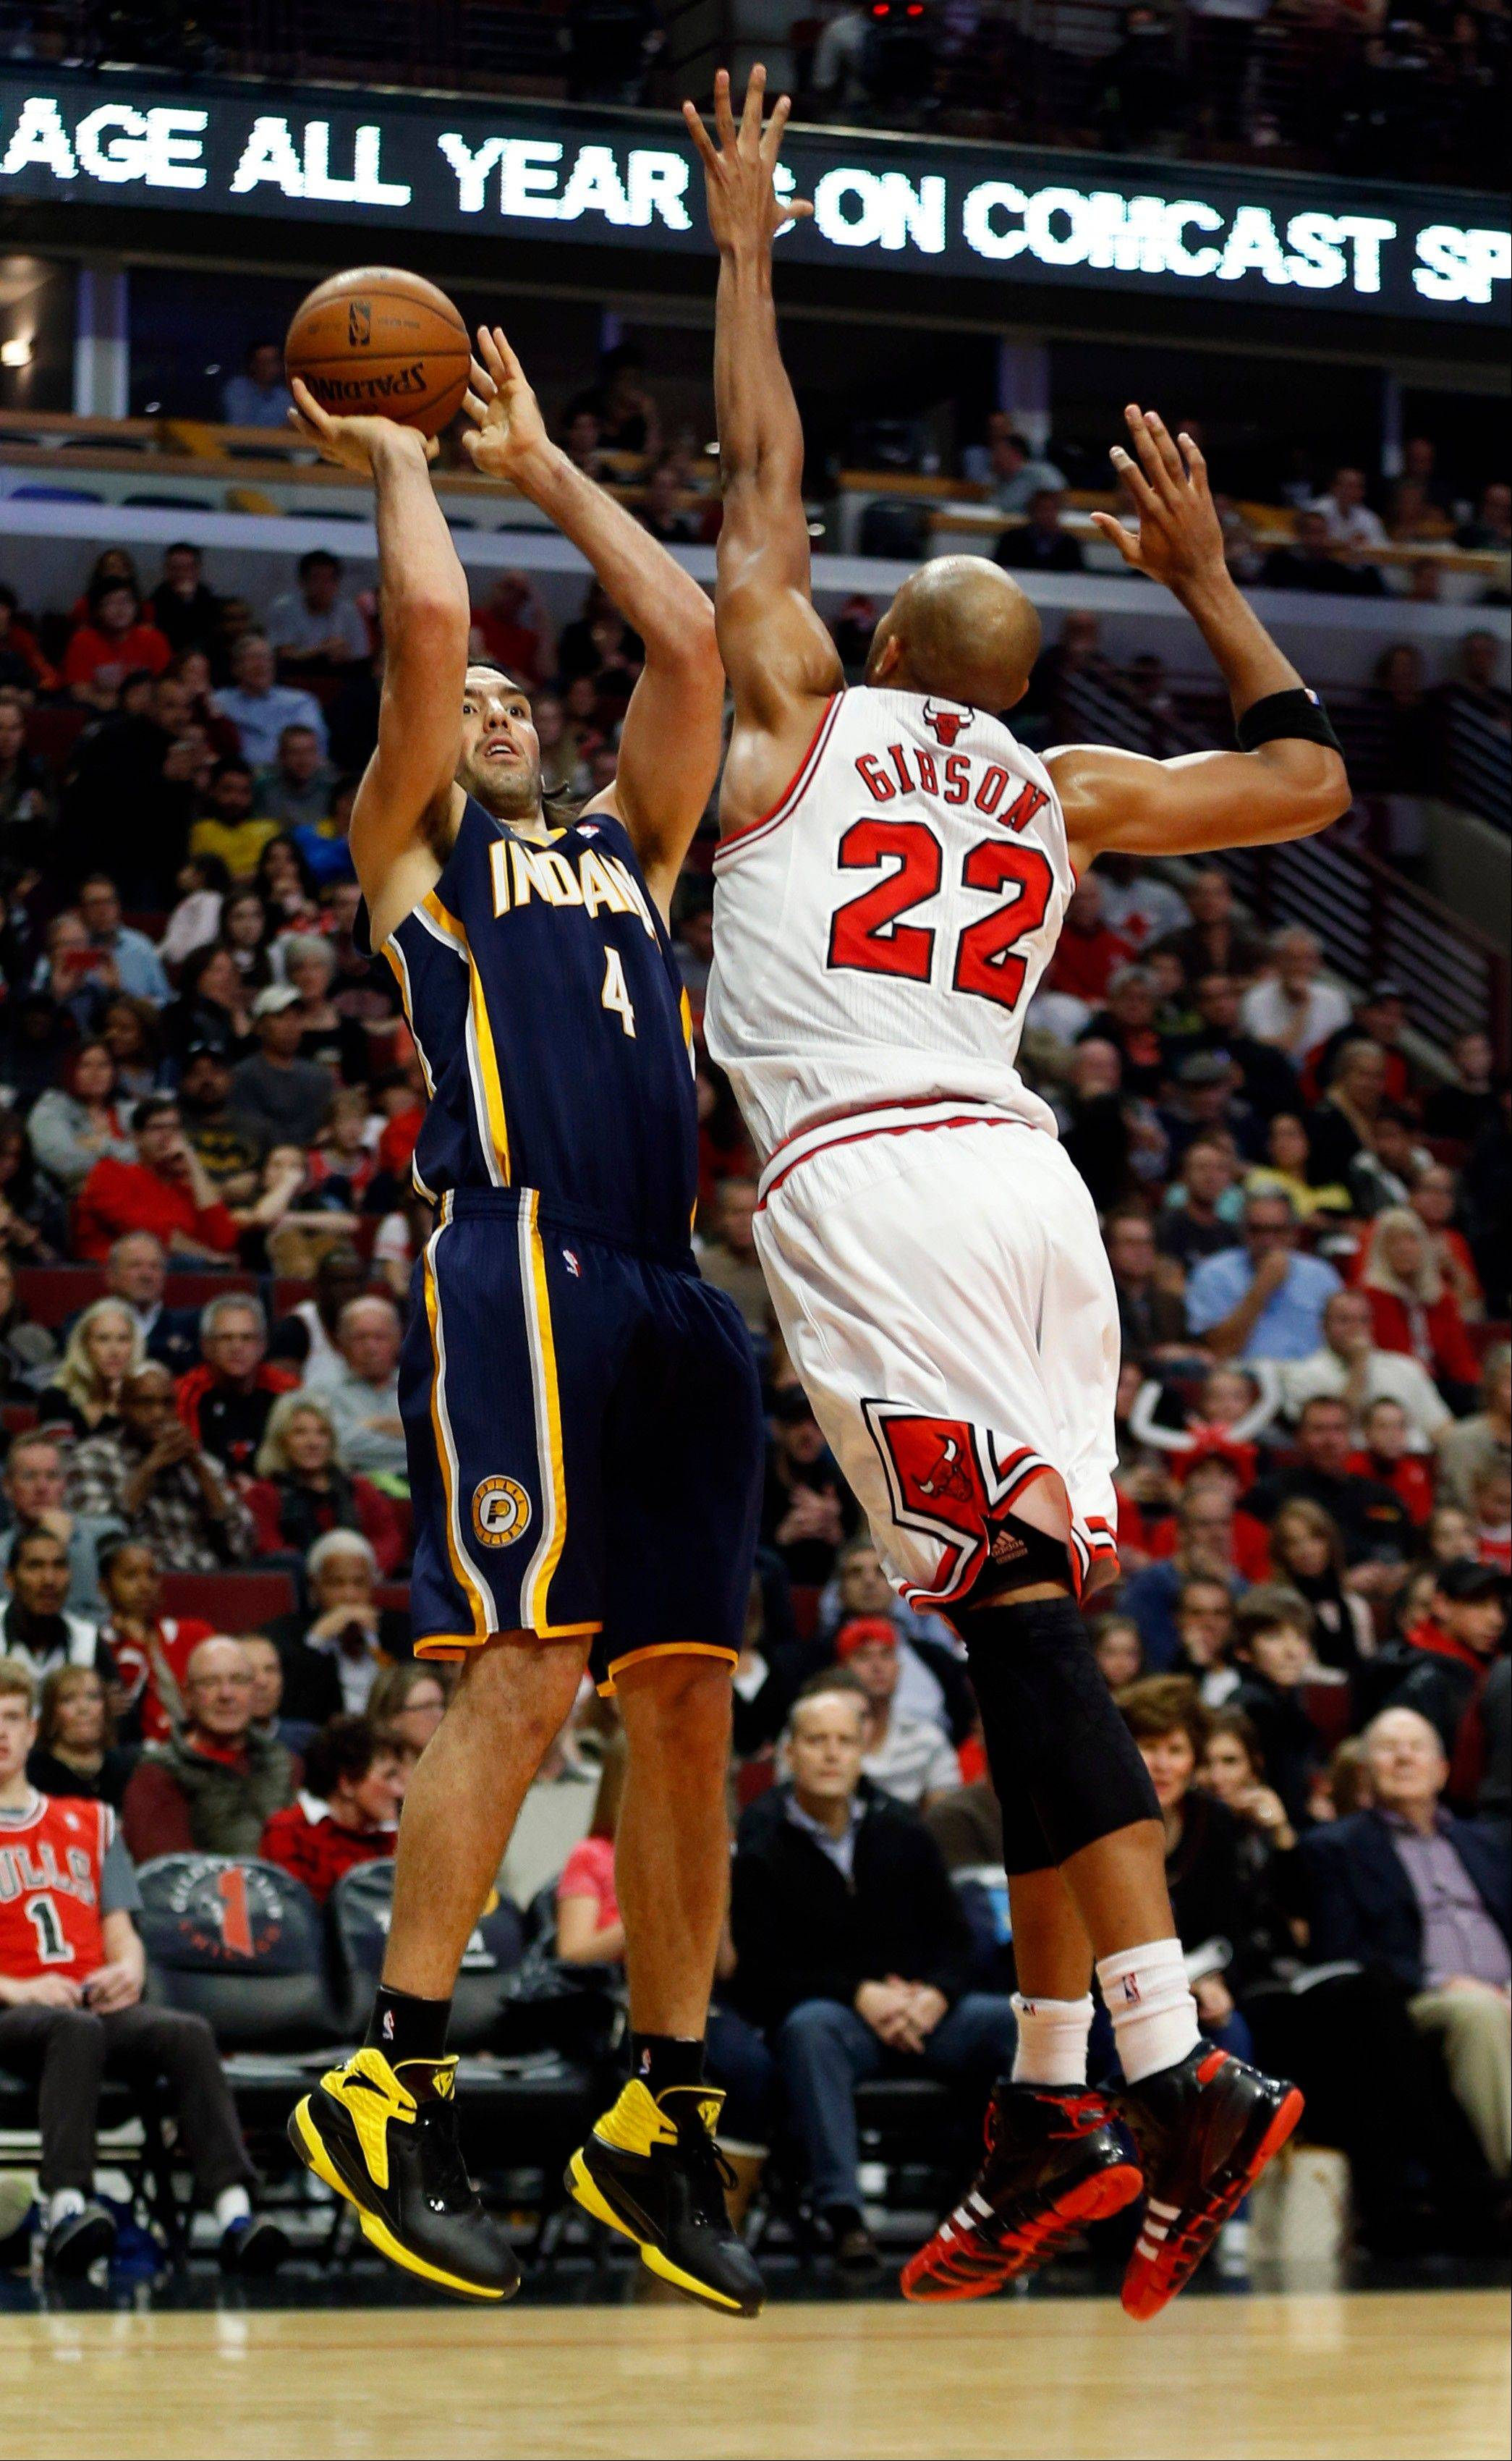 Indiana Pacers forward Luis Scola (4) shoots against Bulls forward Taj Gibson (22) during Saturday night�s game at the United Center. The Bulls ended the Pacers perfect season with a 110 to 94 win.